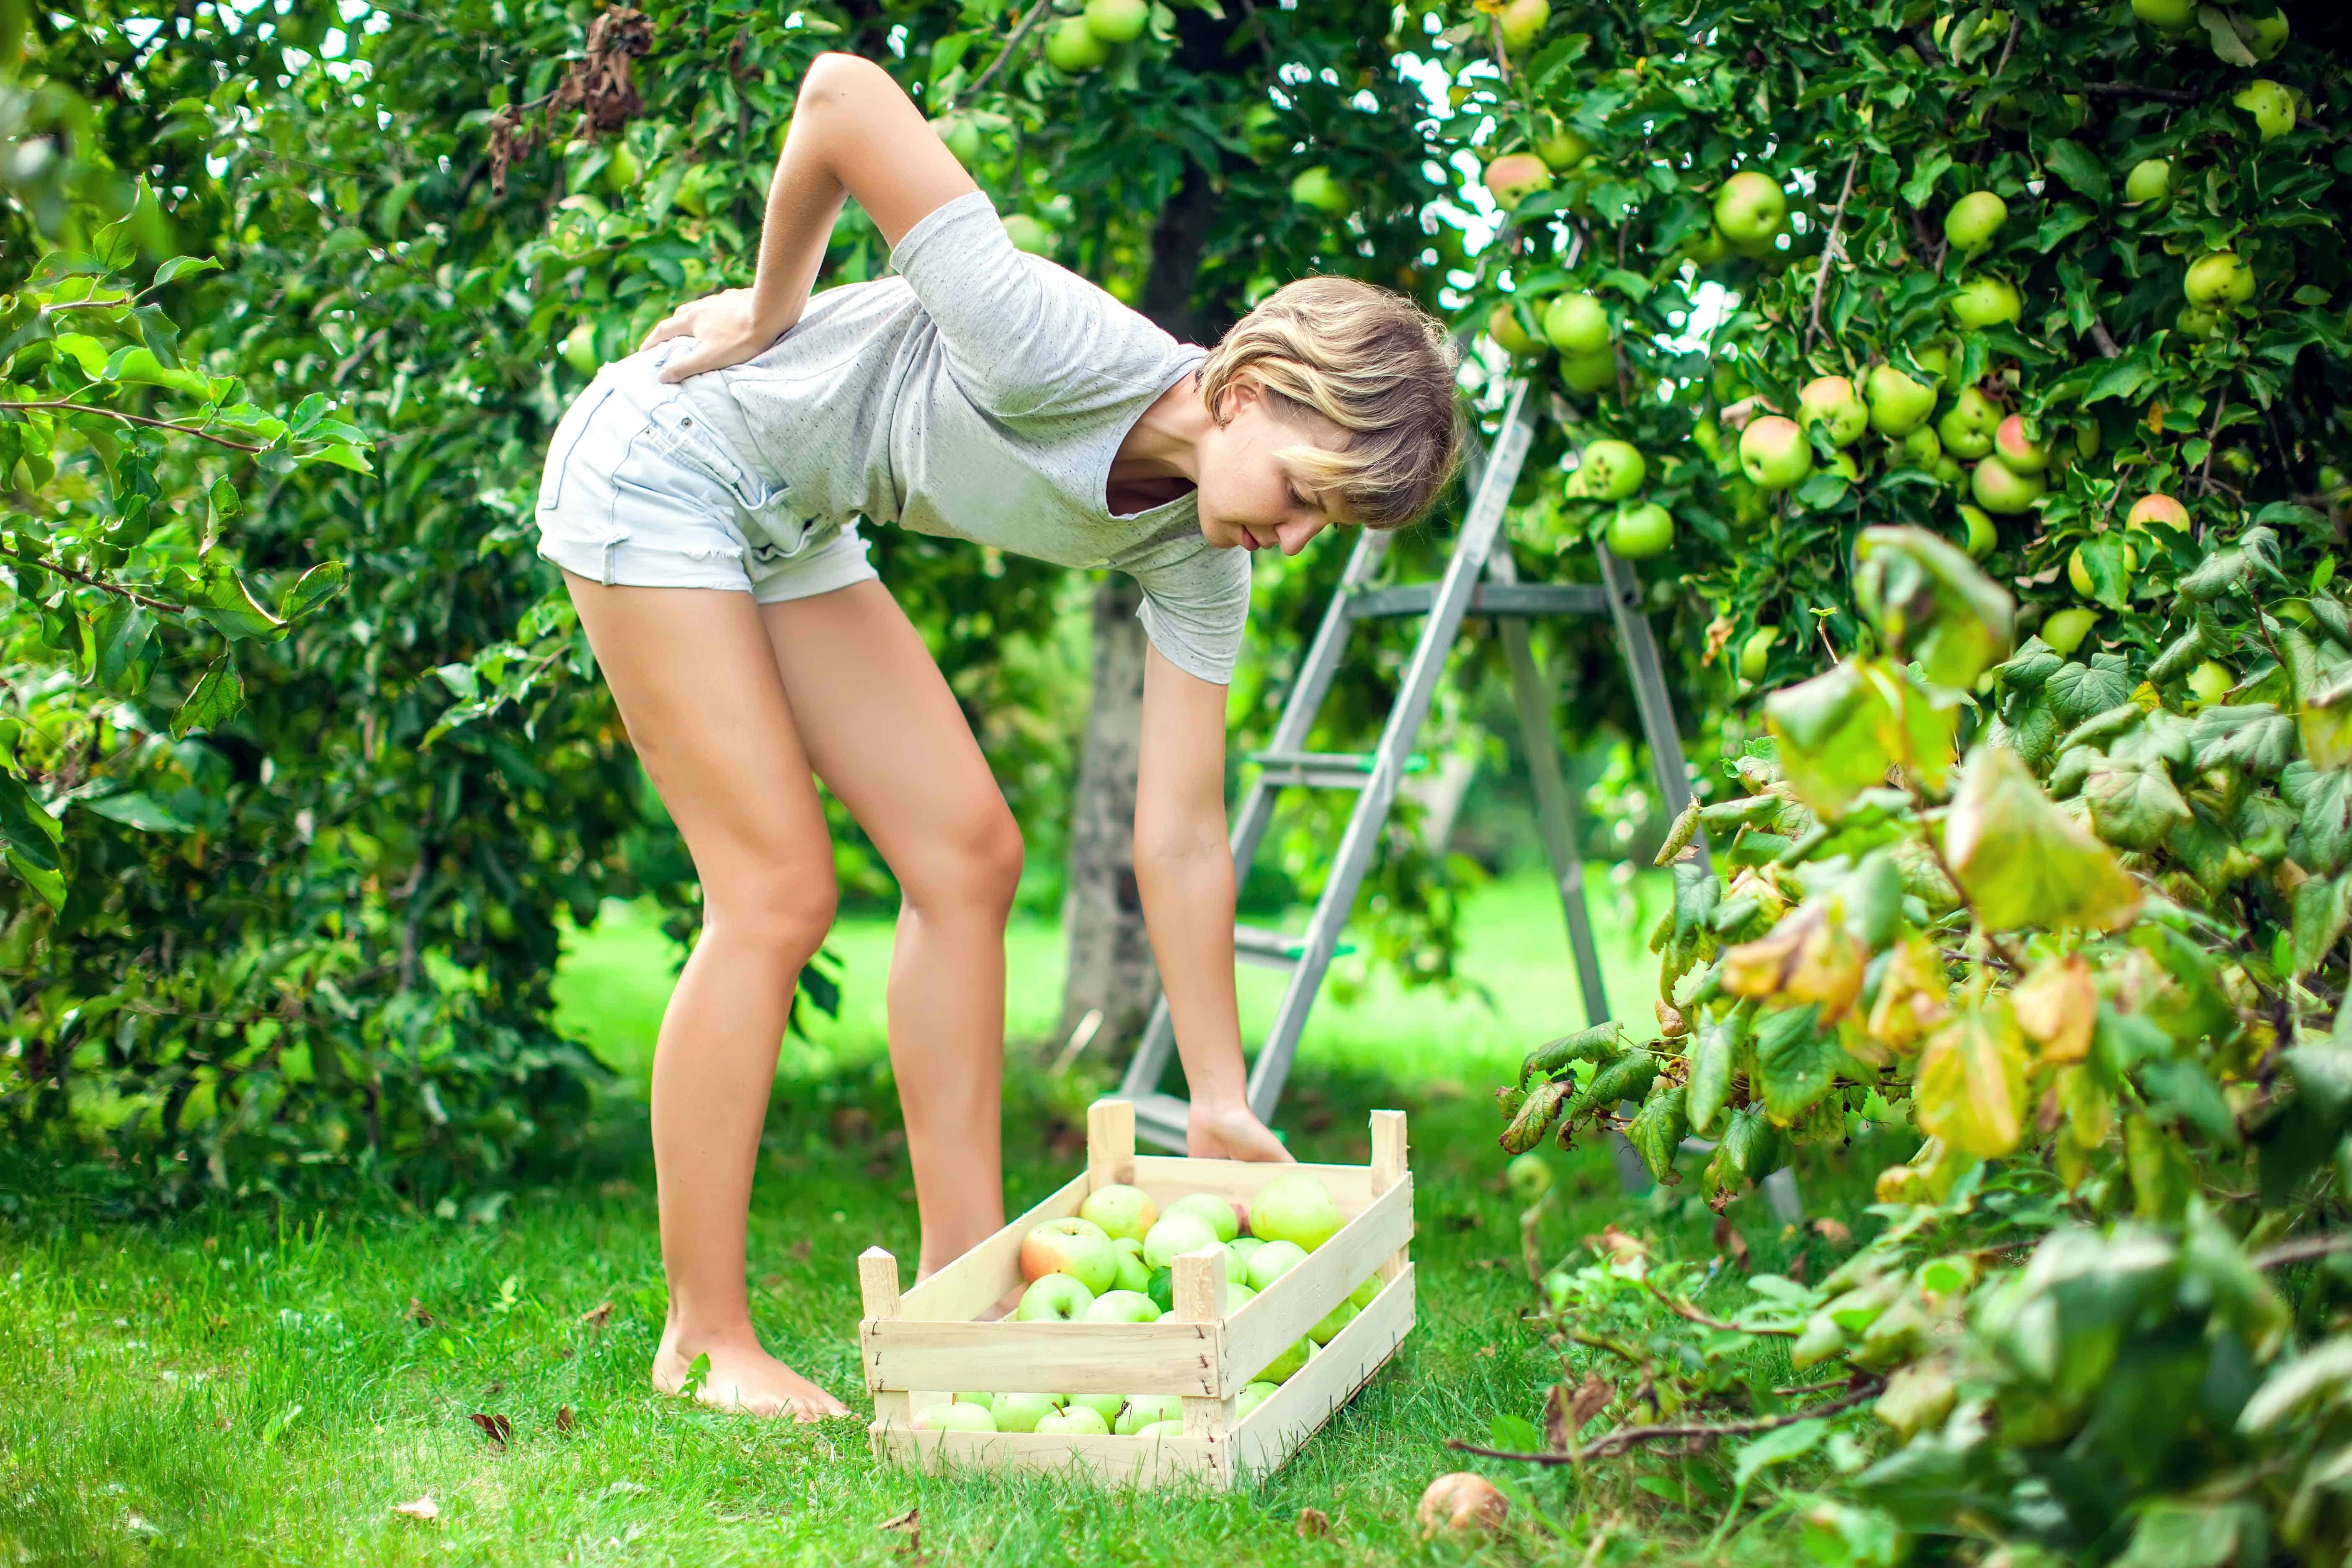 Woman with a strong pain in low part of the back while collecting apples in the garden.